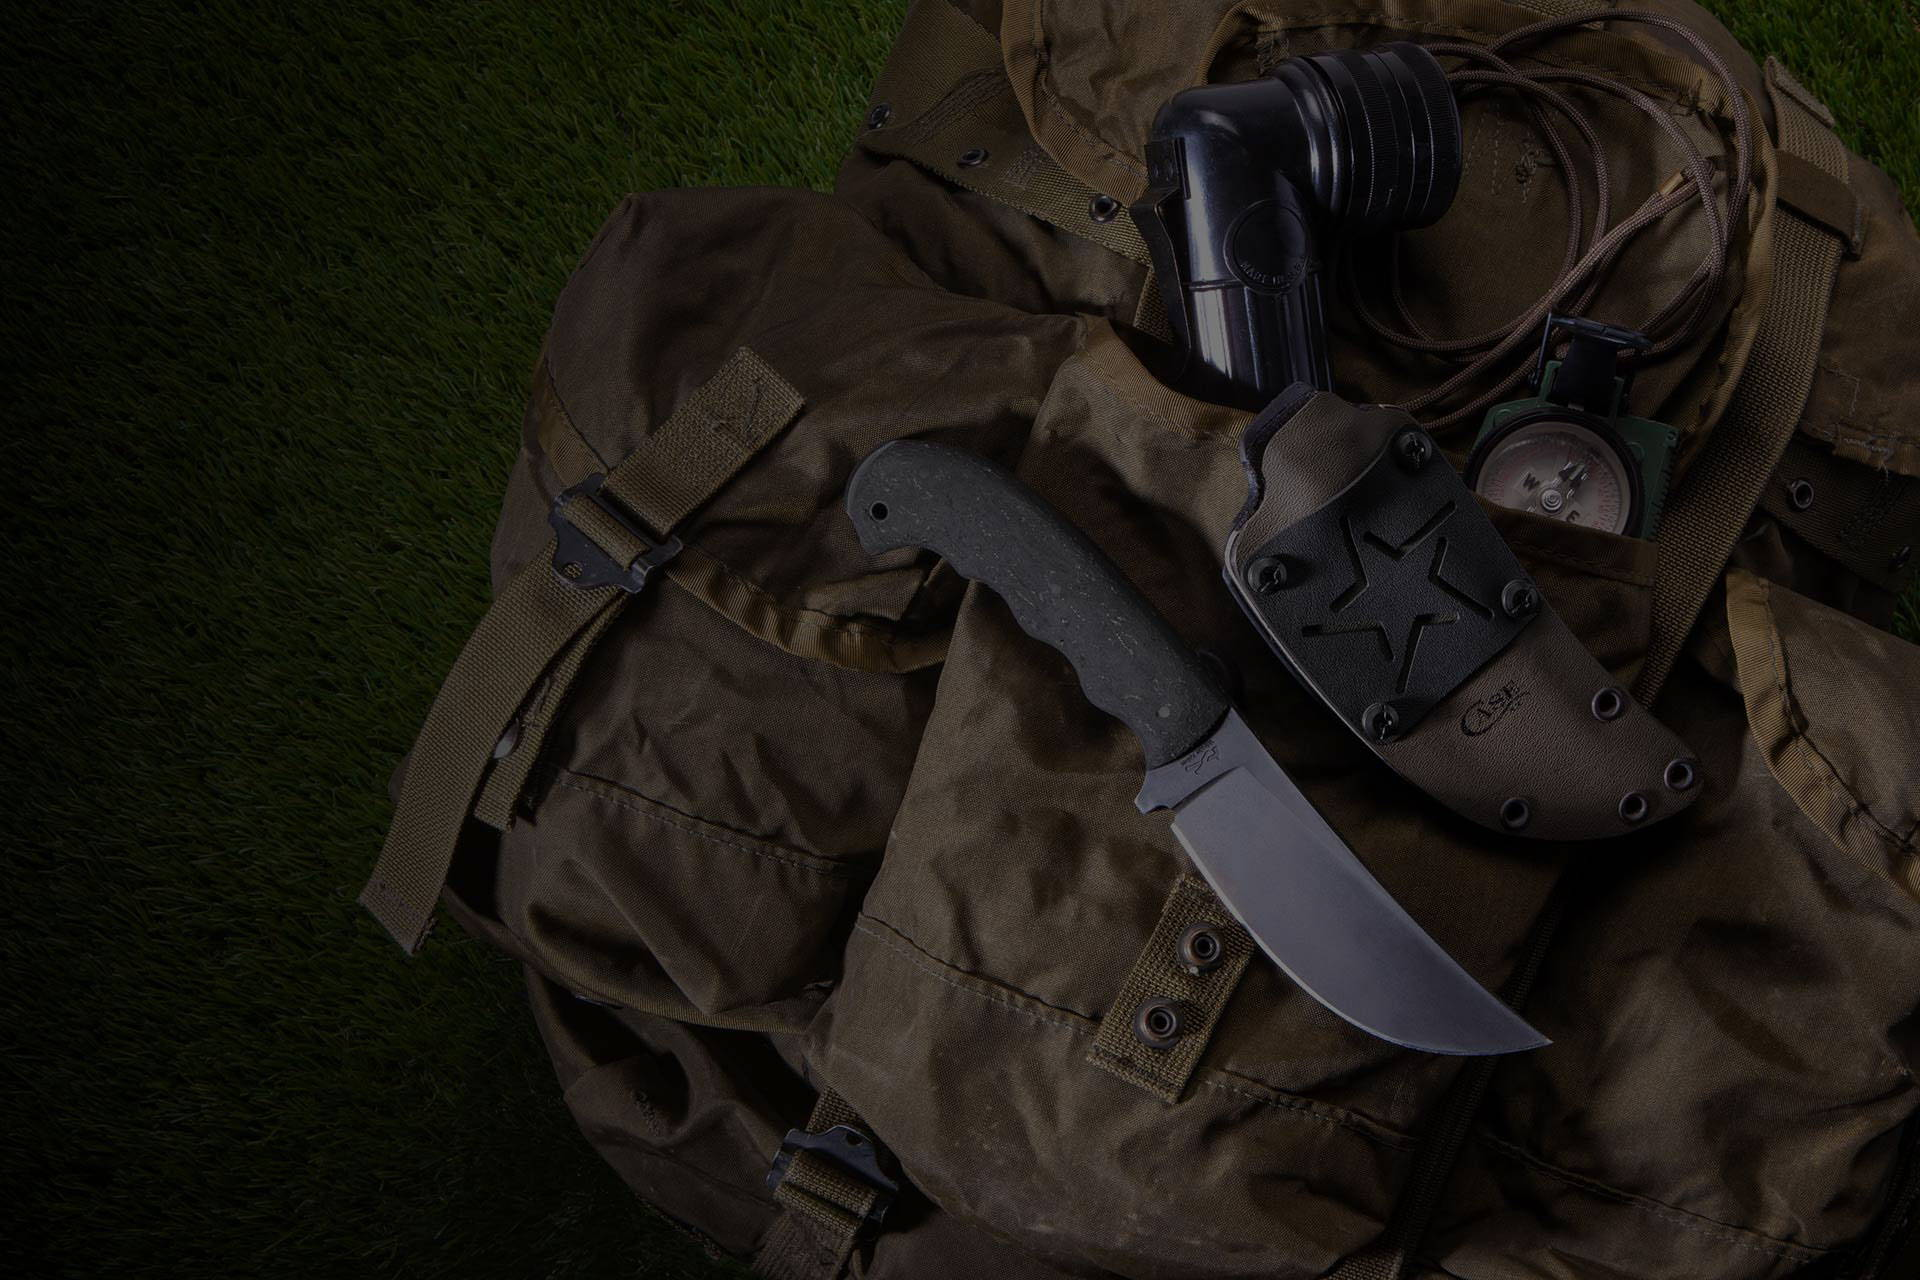 Case® x Winkler Hambone knife with sheath on military style backpack.